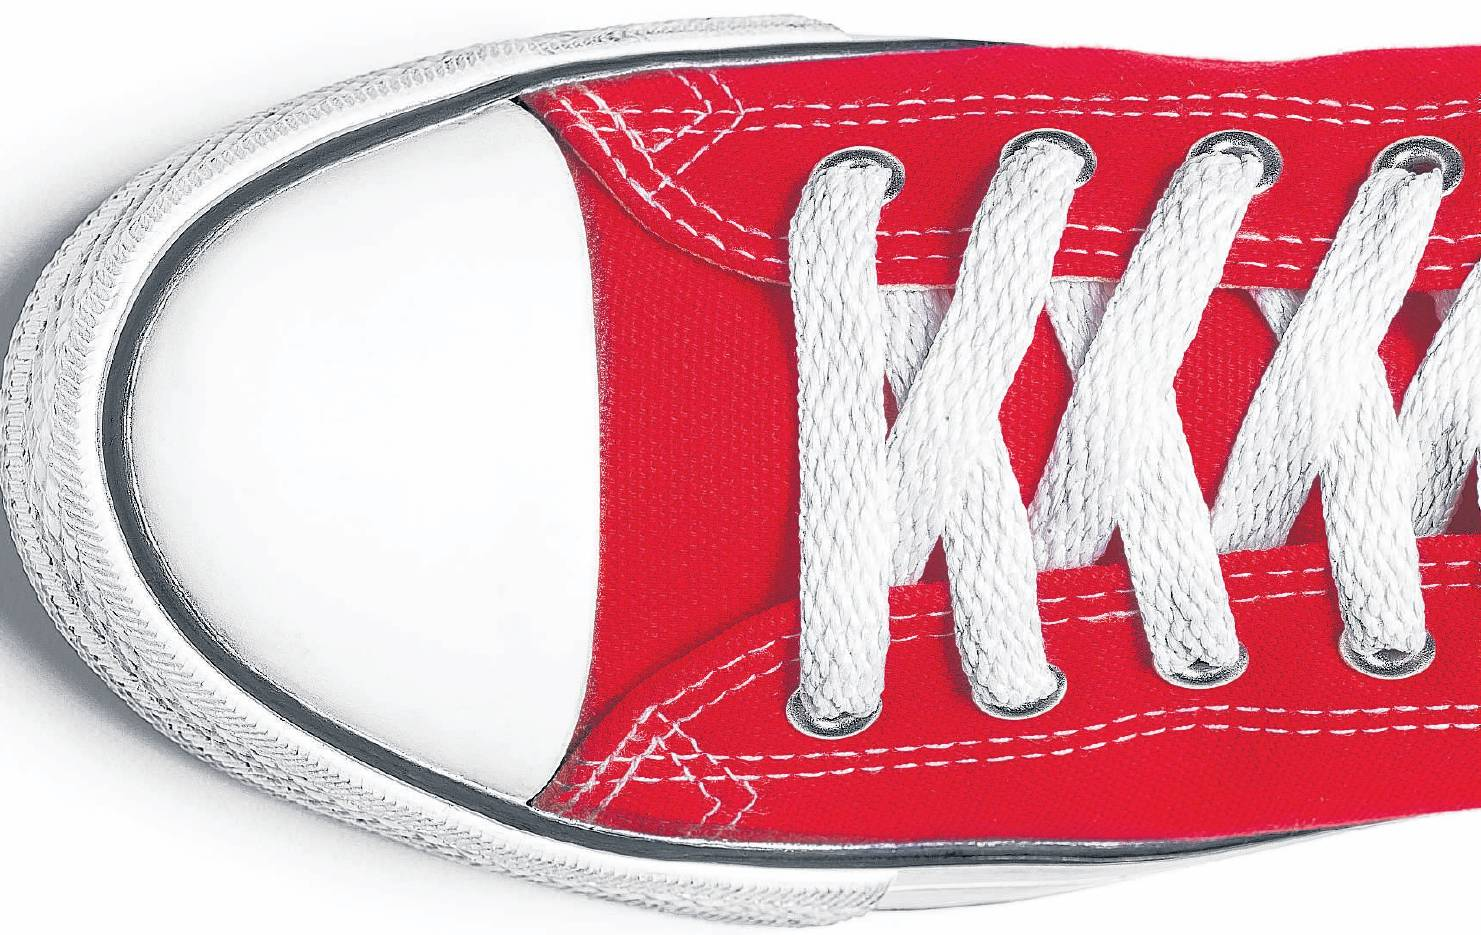 Converse Chuck Taylor All Stars. Photo: Getty Images